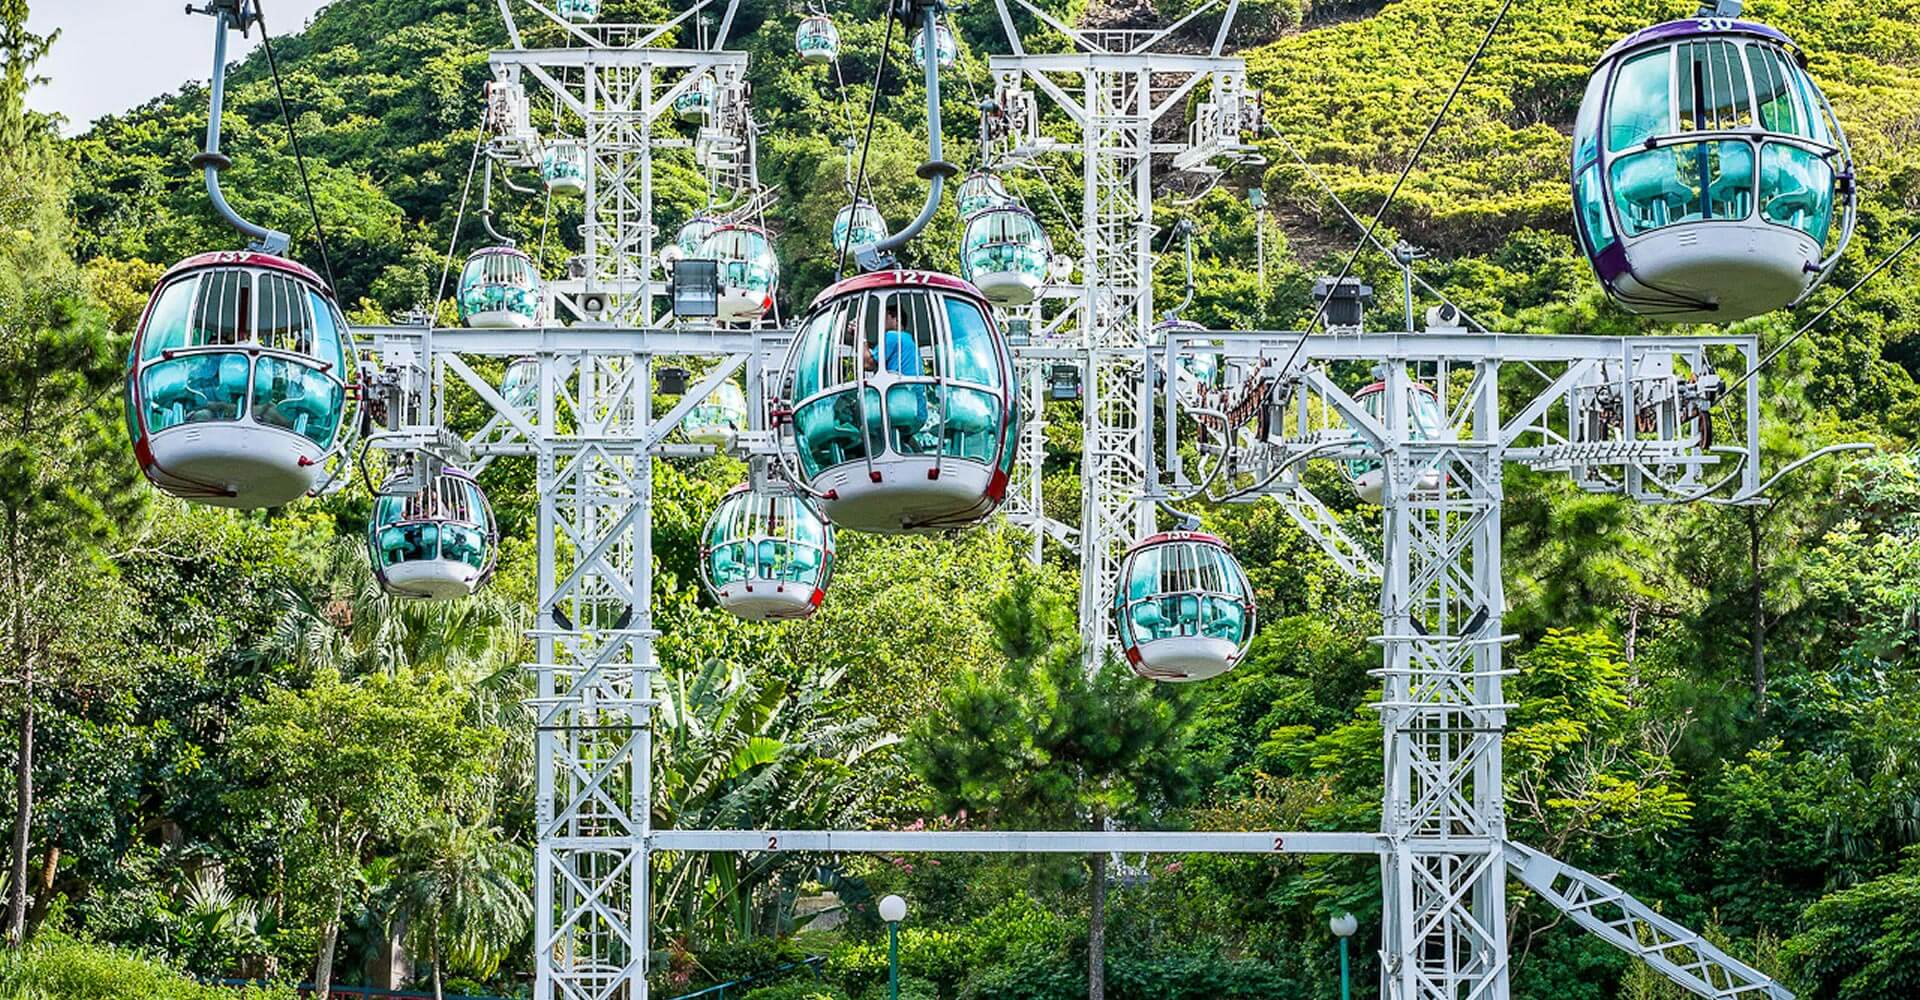 Ocean Park, Hong Kong - amusement parks around the world